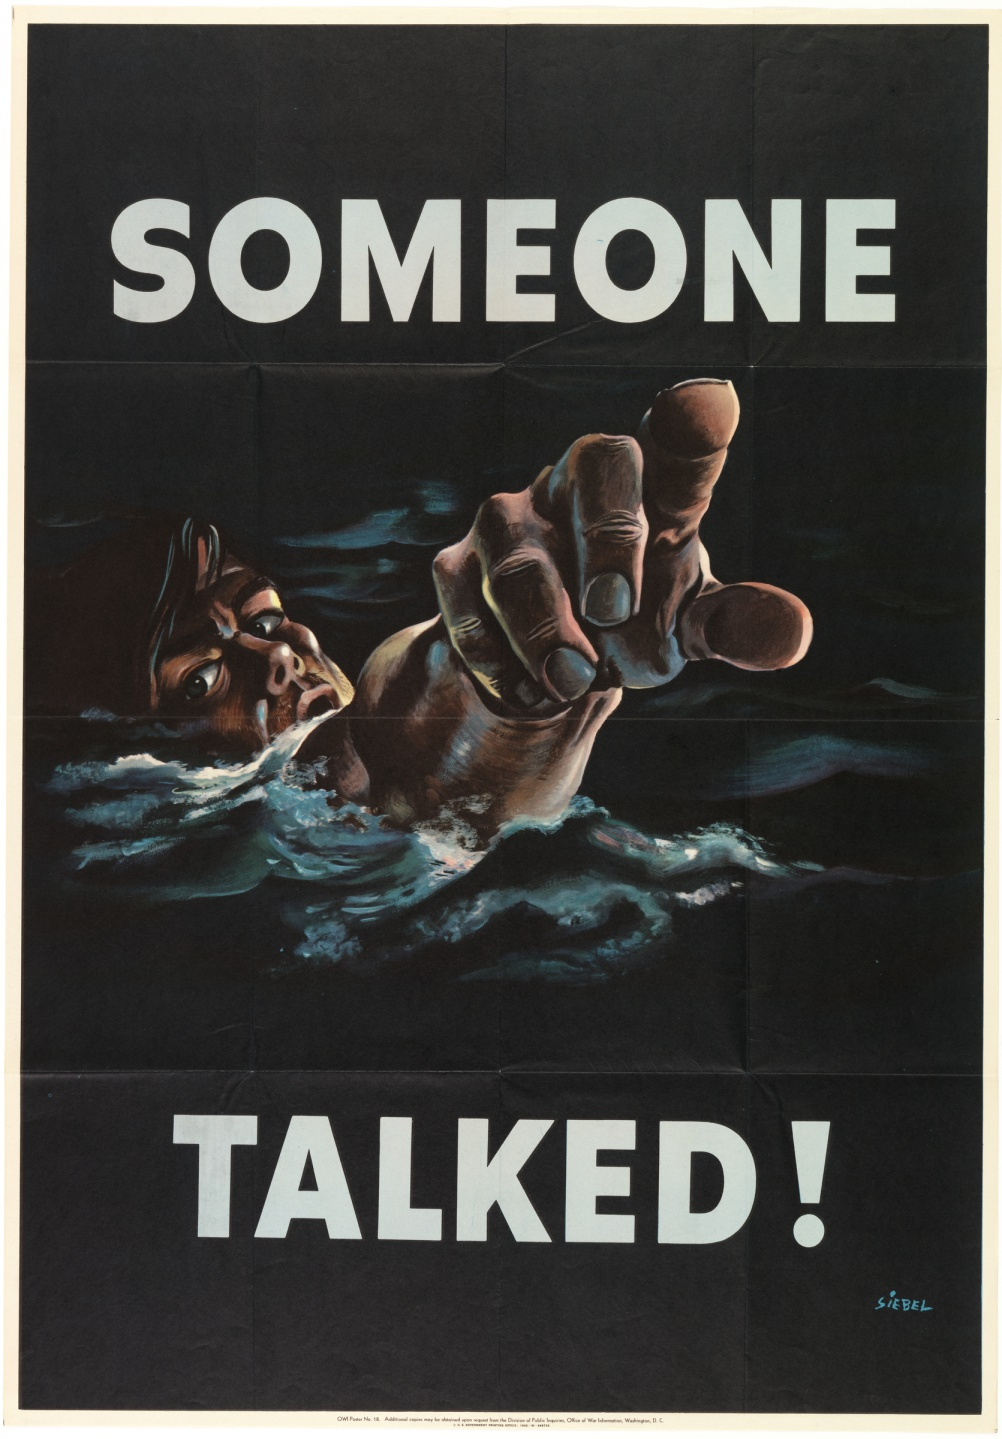 Someone Talked by Frederick Siebel, 1942